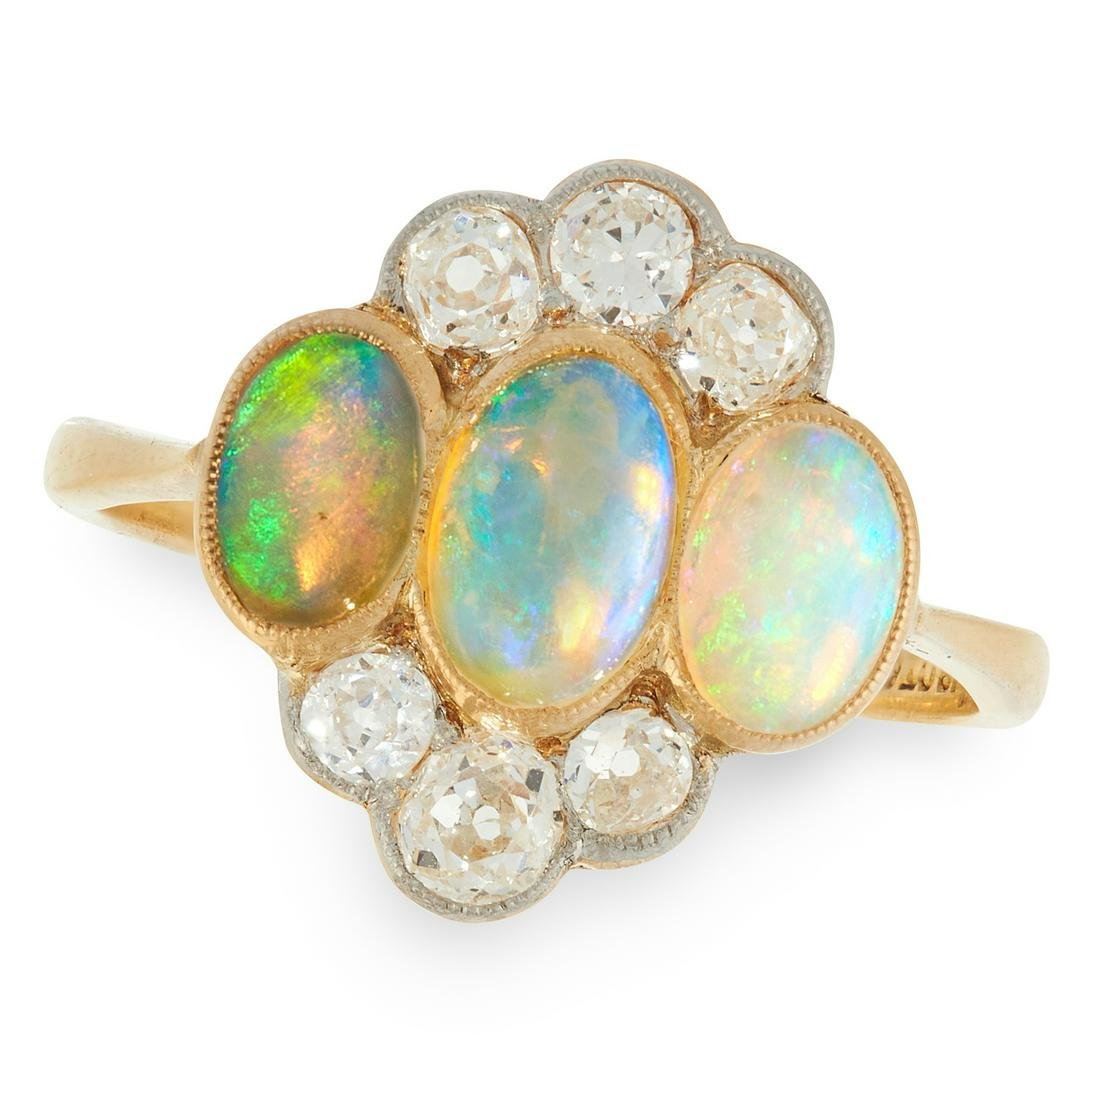 AN ART DECO OPAL AND DIAMOND RING, EARLY 20TH CENTURY